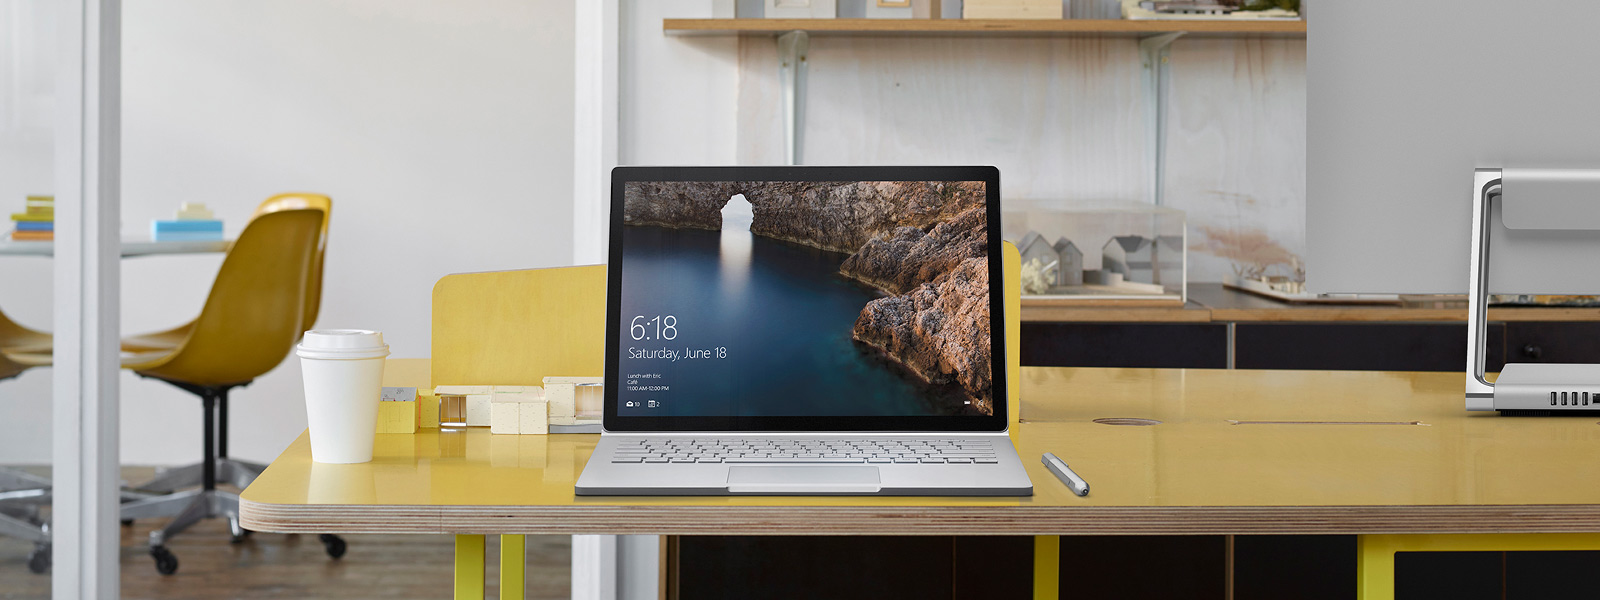 Microsoft Surface Book on a yellow table.